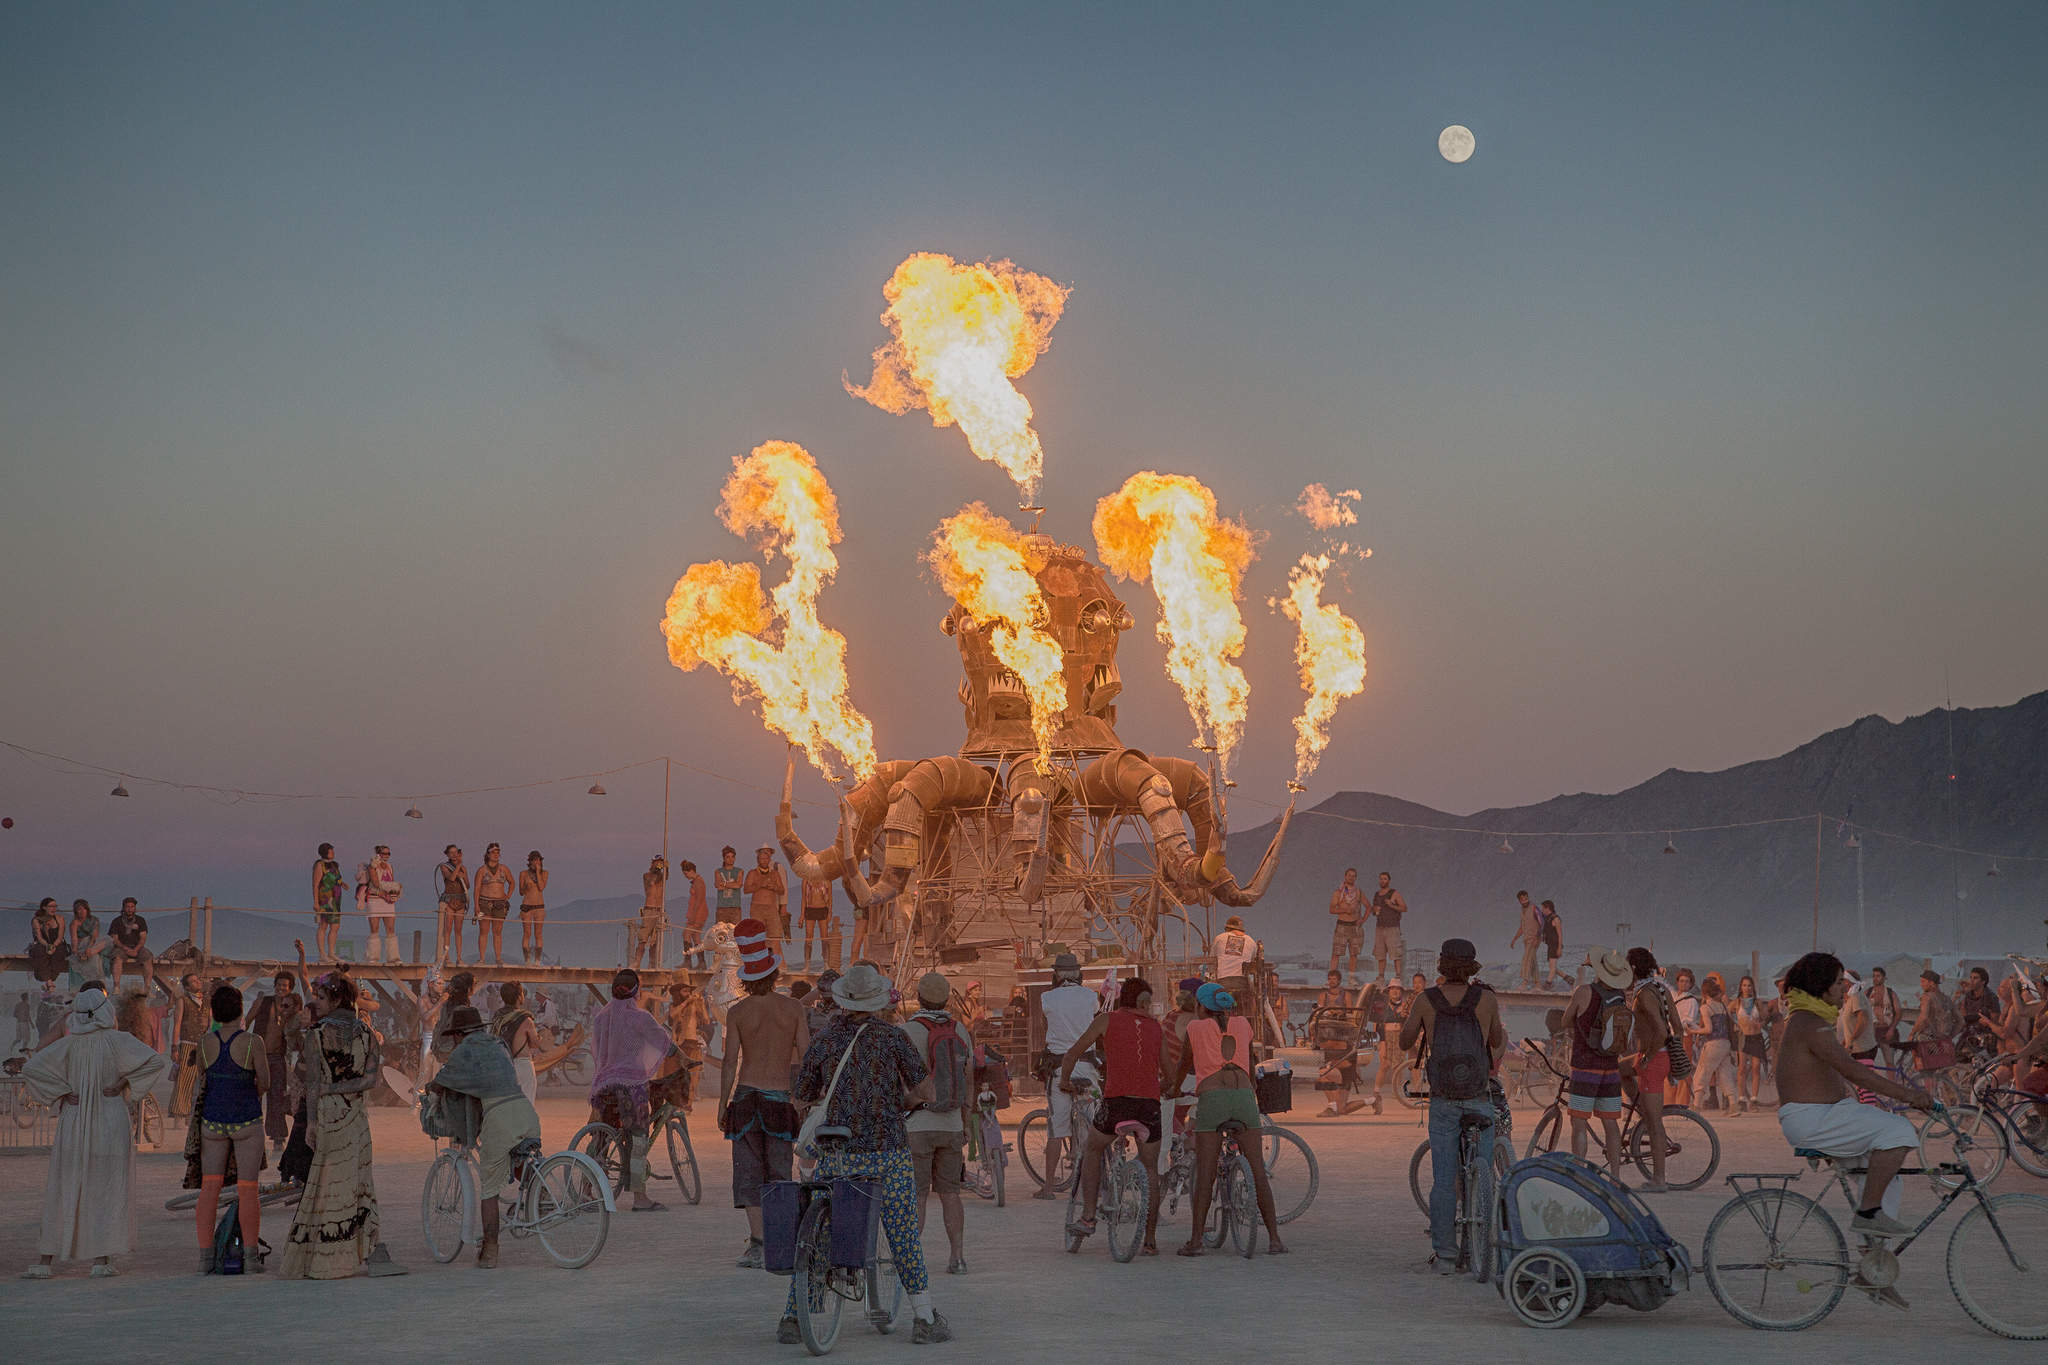 Celebrities at Burning Man - Verdict